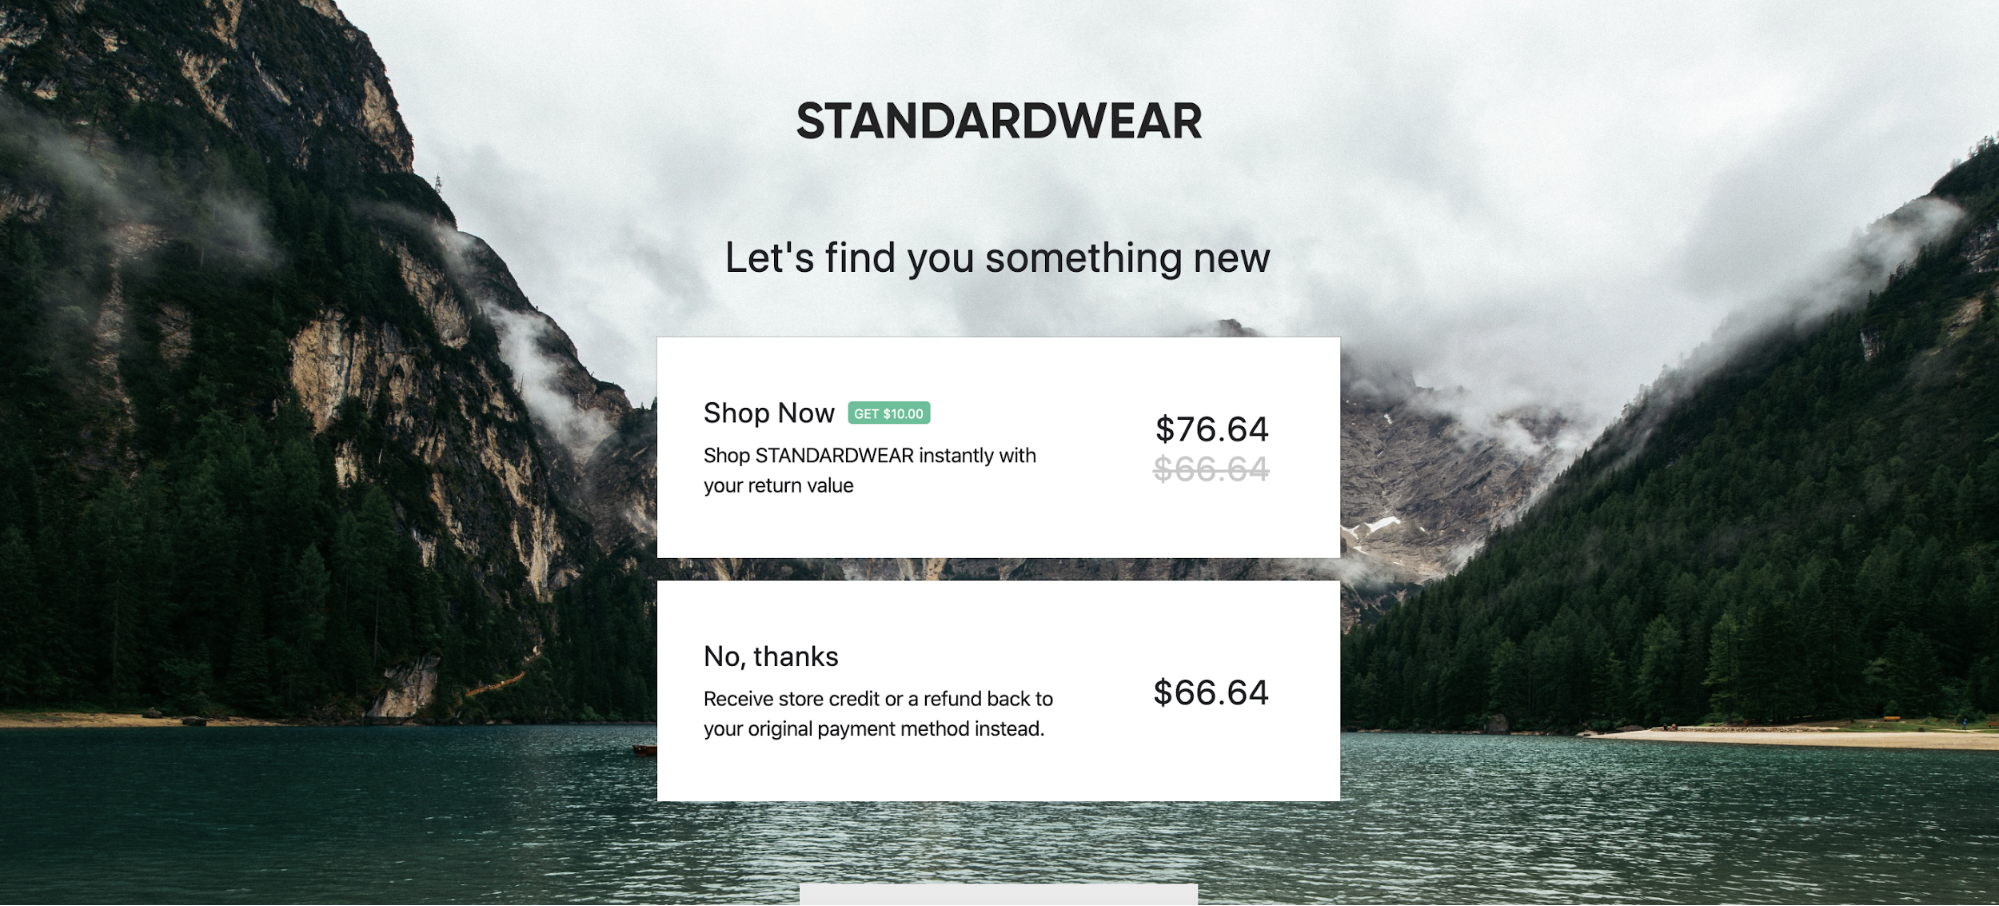 Standardwear returns portal